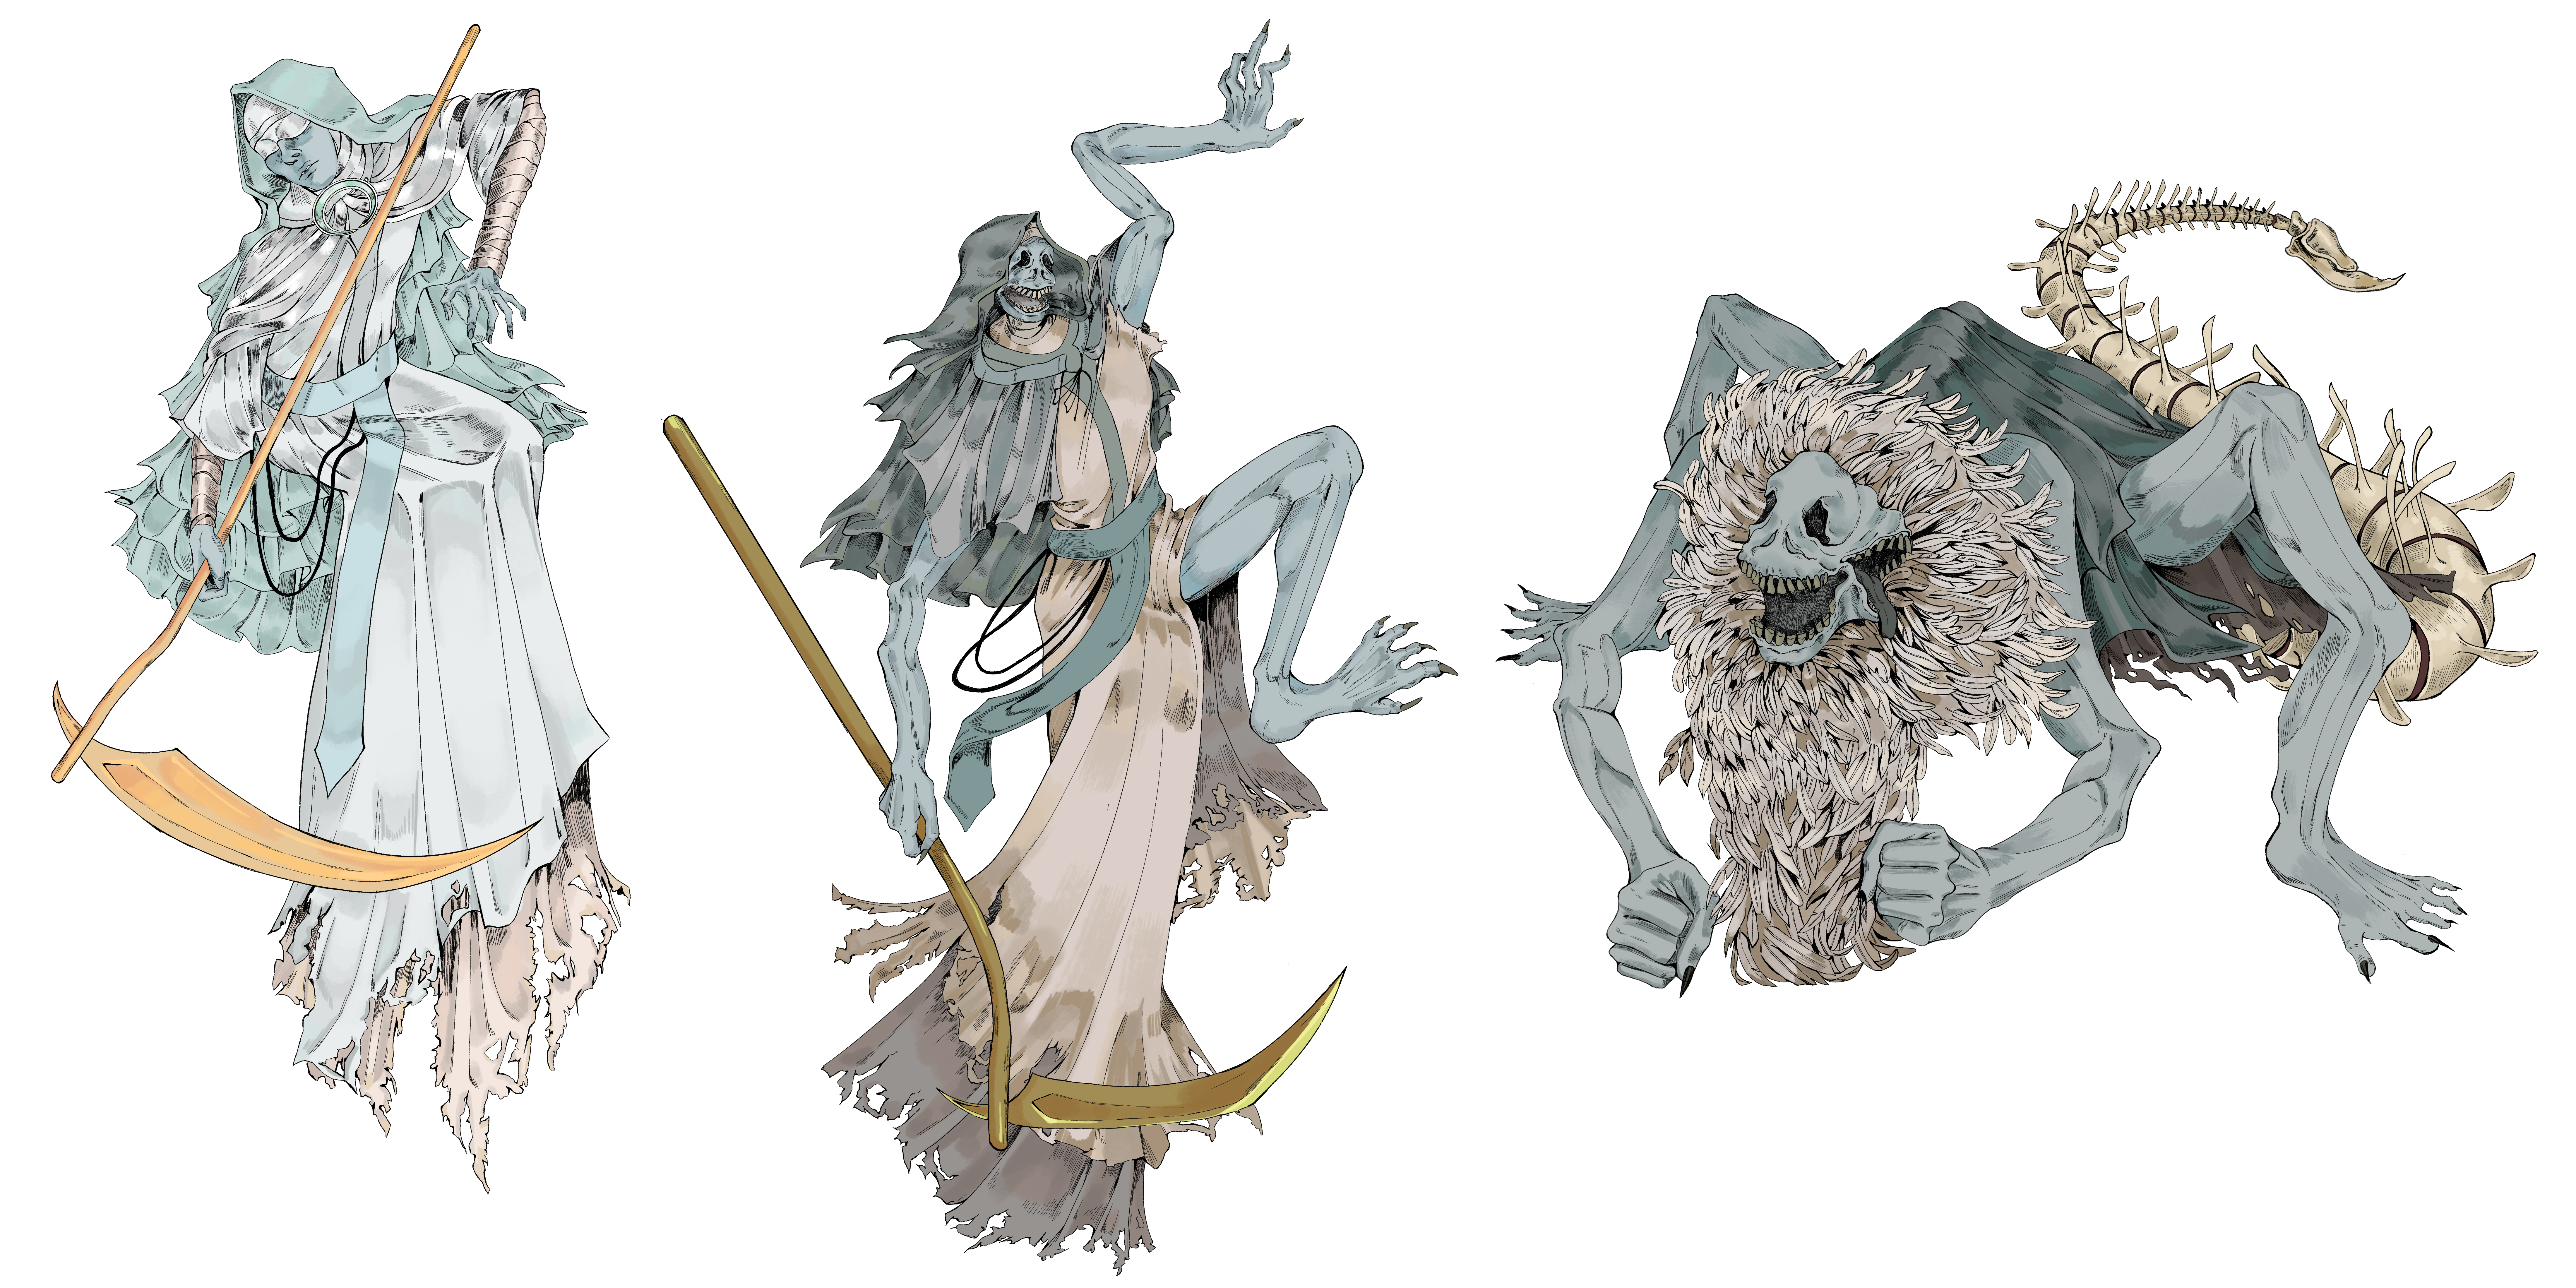 A three stage boss design of a nun turning into a feather covered beast.